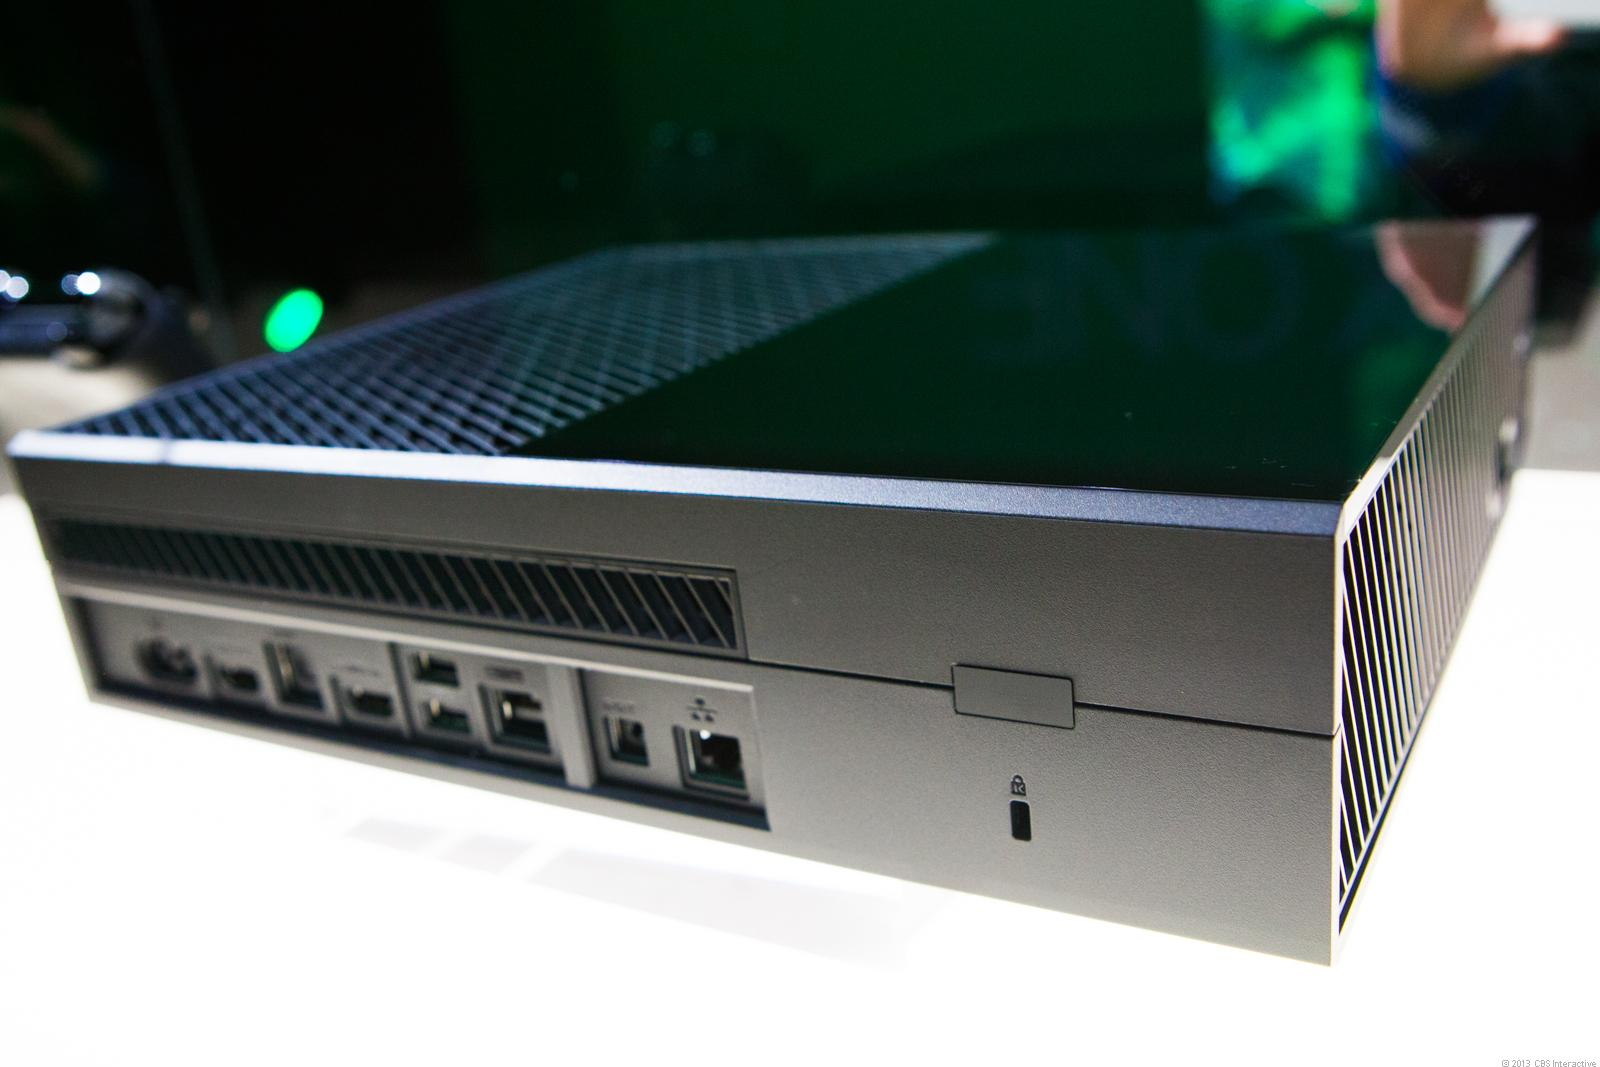 Xbox One is not backwards compatible